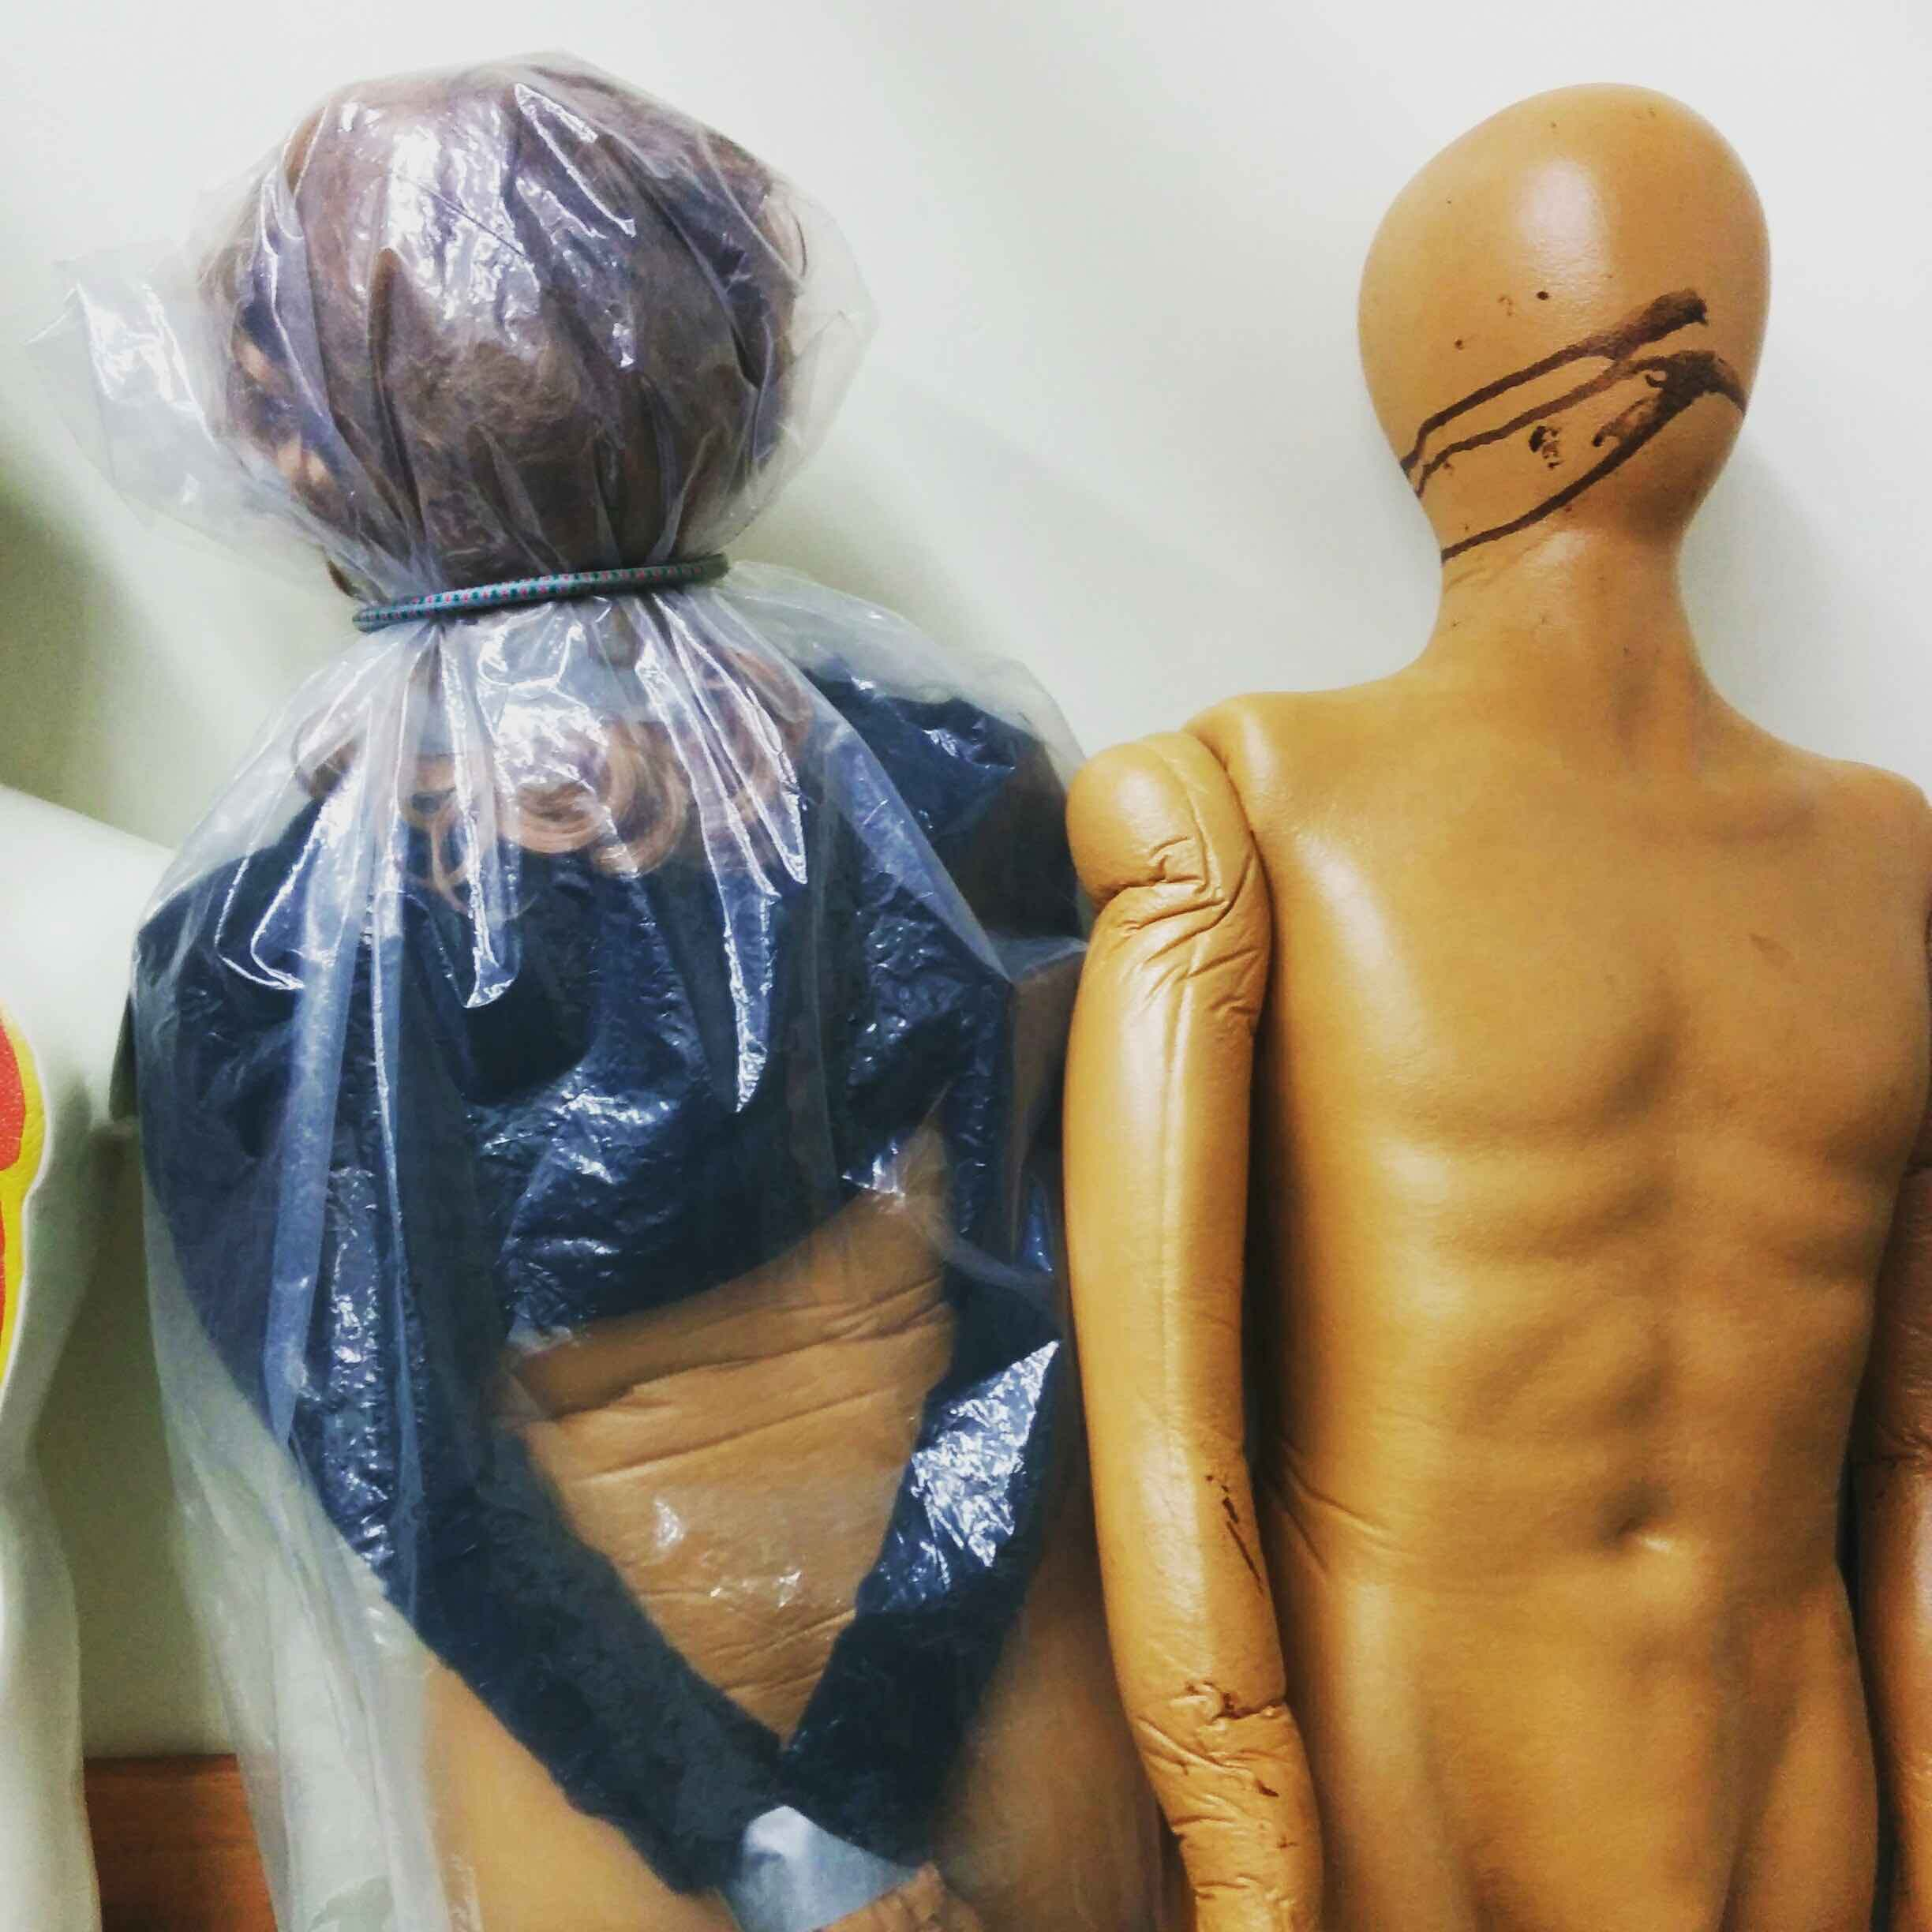 The Spider-Man Bandit & The Artificial Human Head: Breakthroughs in Crime Scene Investigation